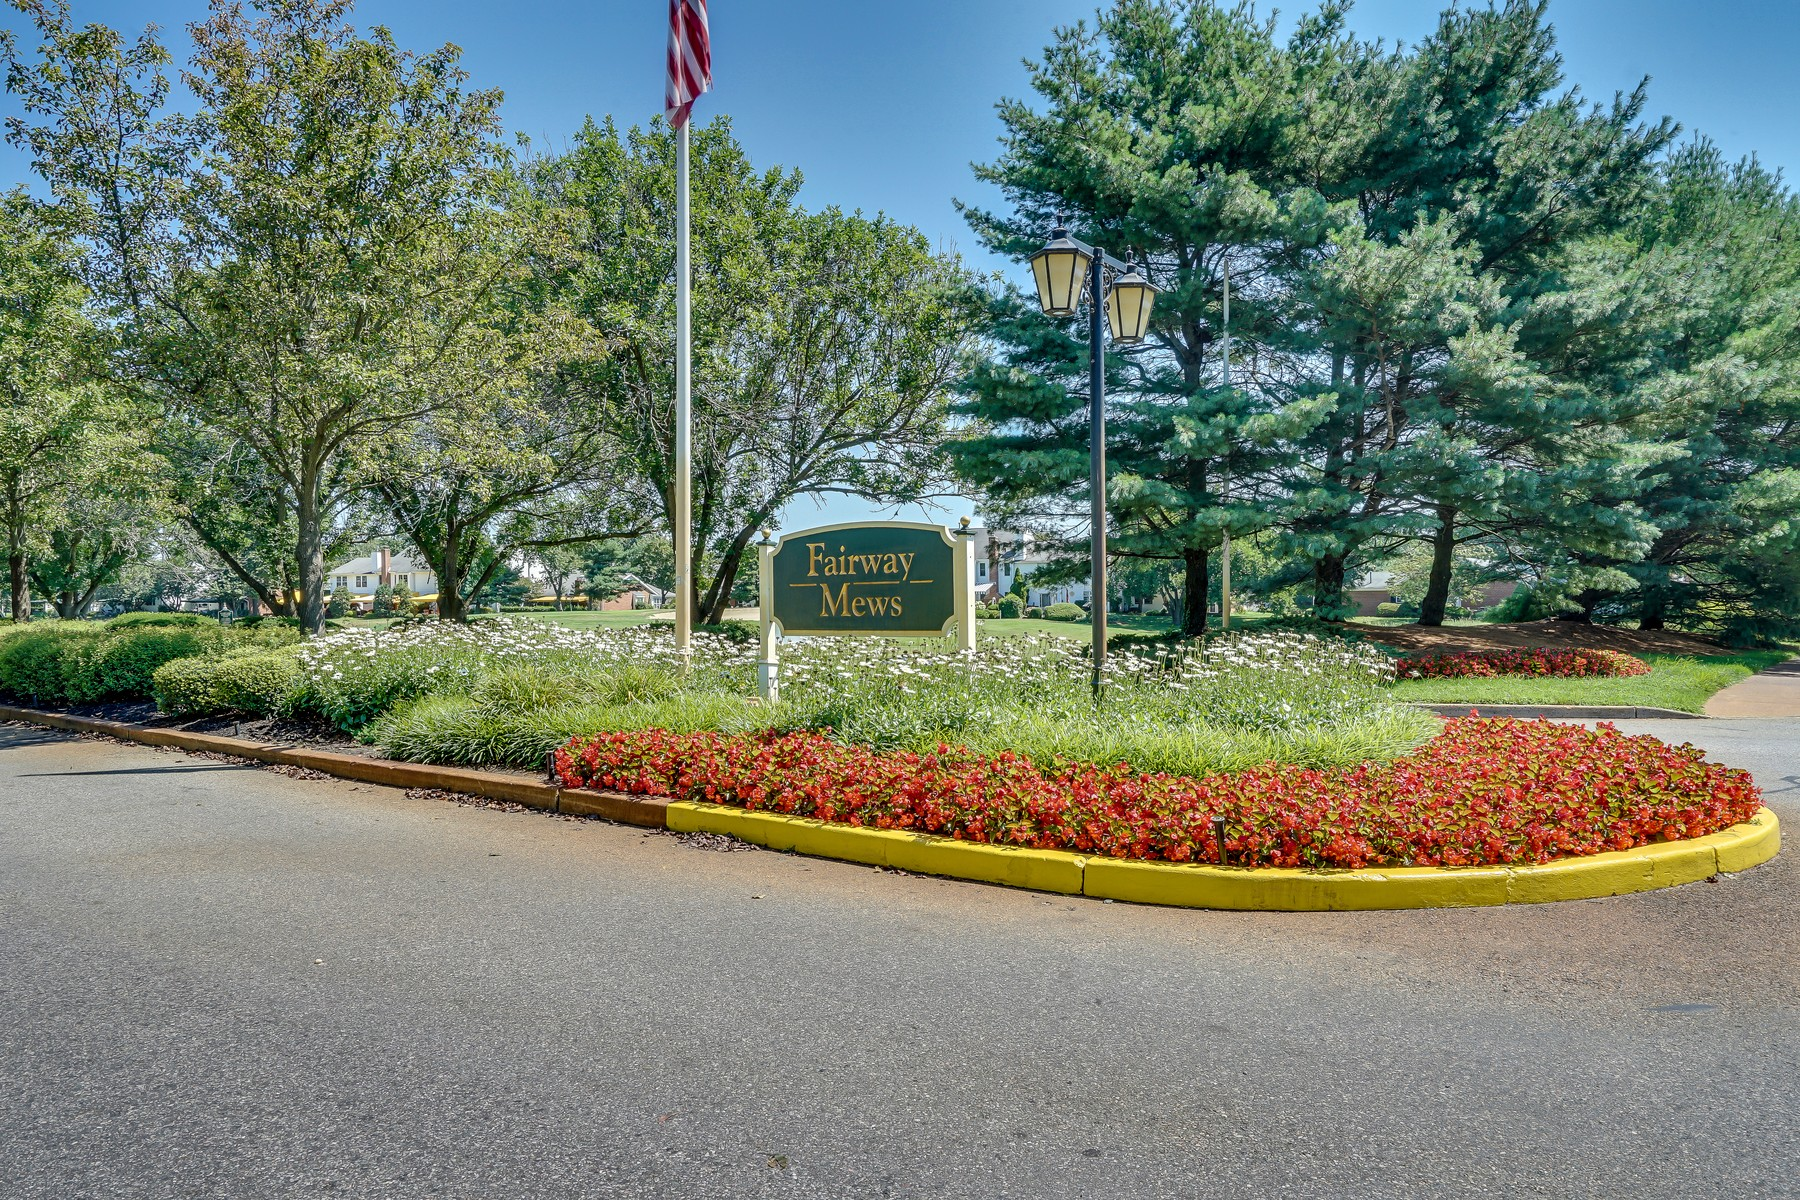 Additional photo for property listing at Fairway Mews 14 Rosewood Ct Spring Lake Heights, New Jersey 07762 United States